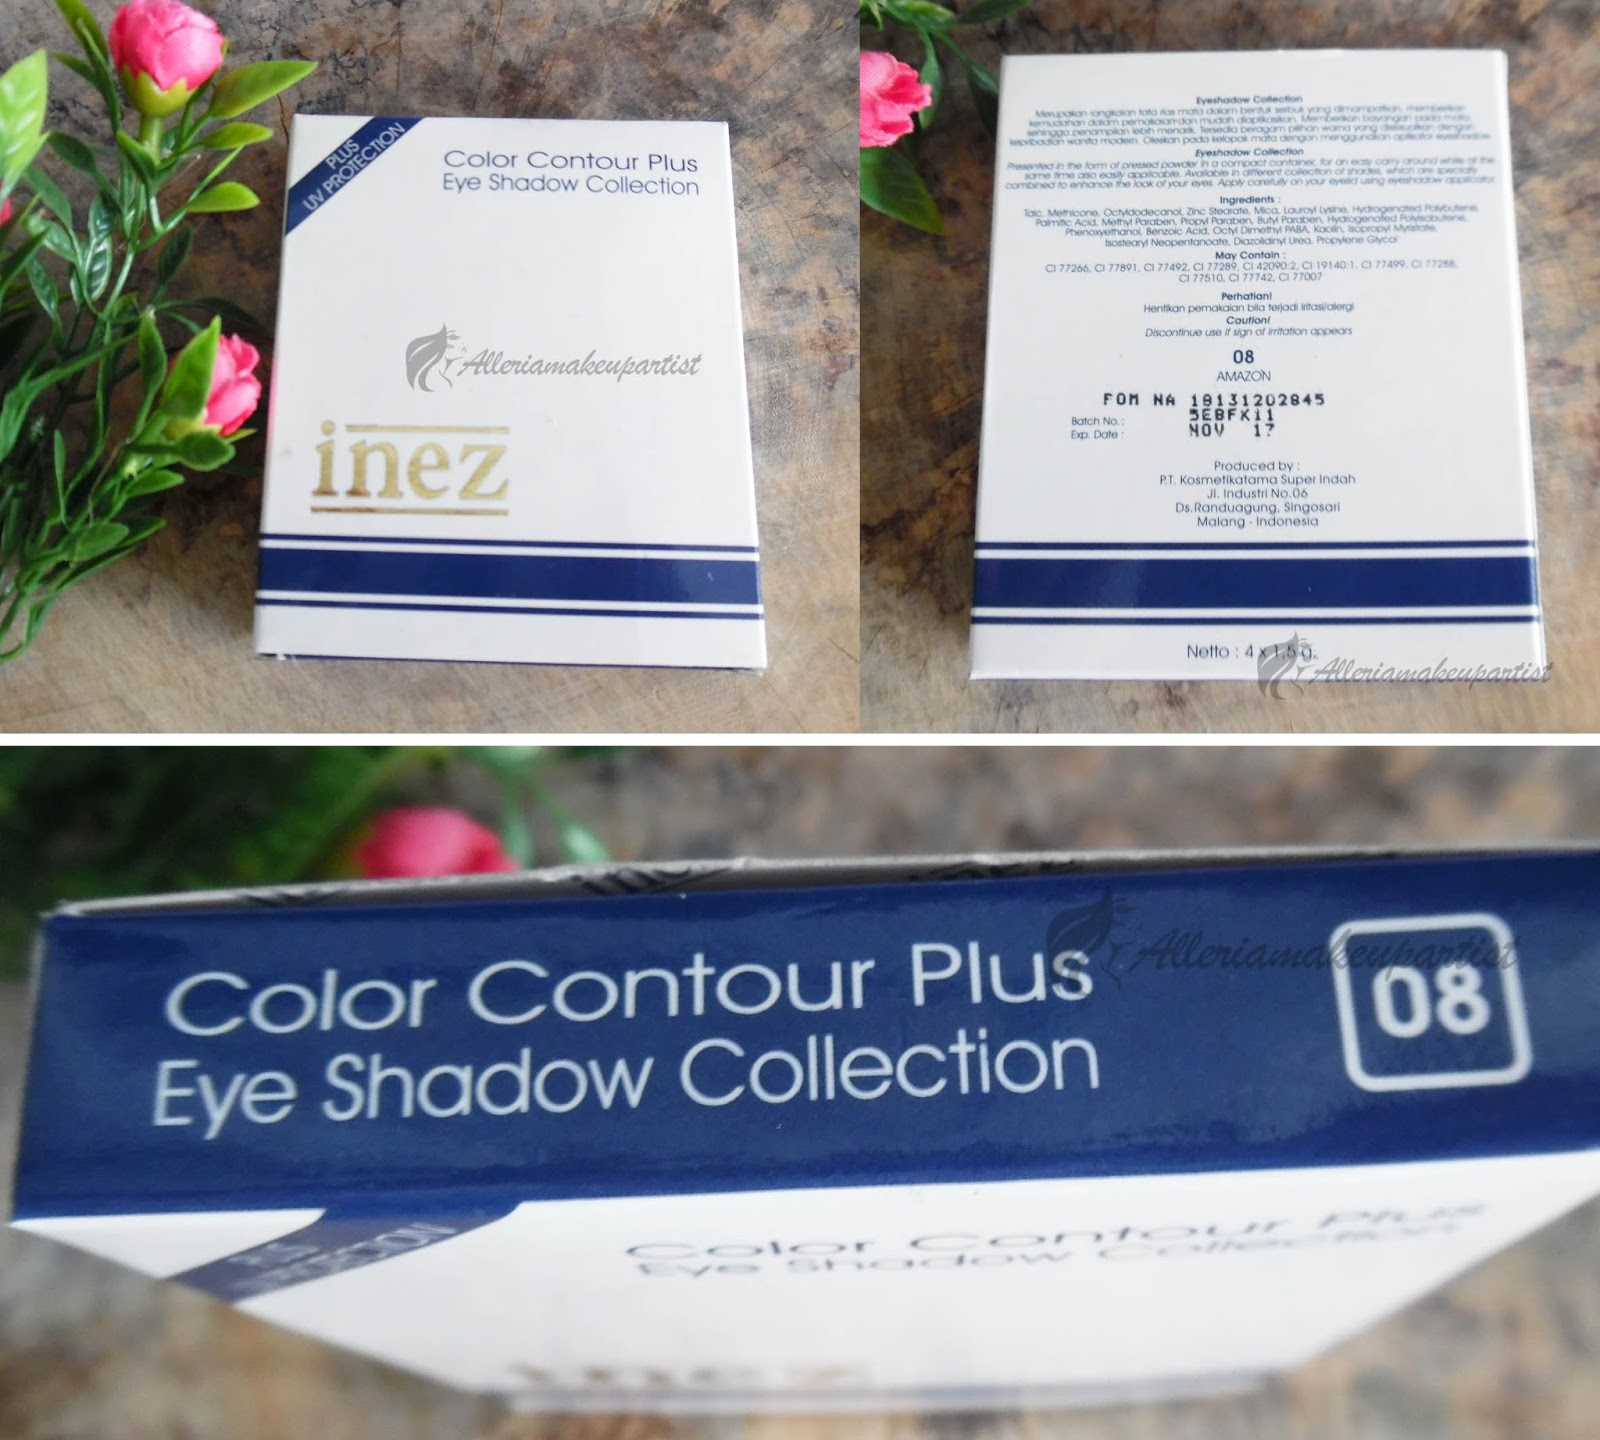 inez-color-contour-plus-eye-shadow-collection-amazon-review.jpg